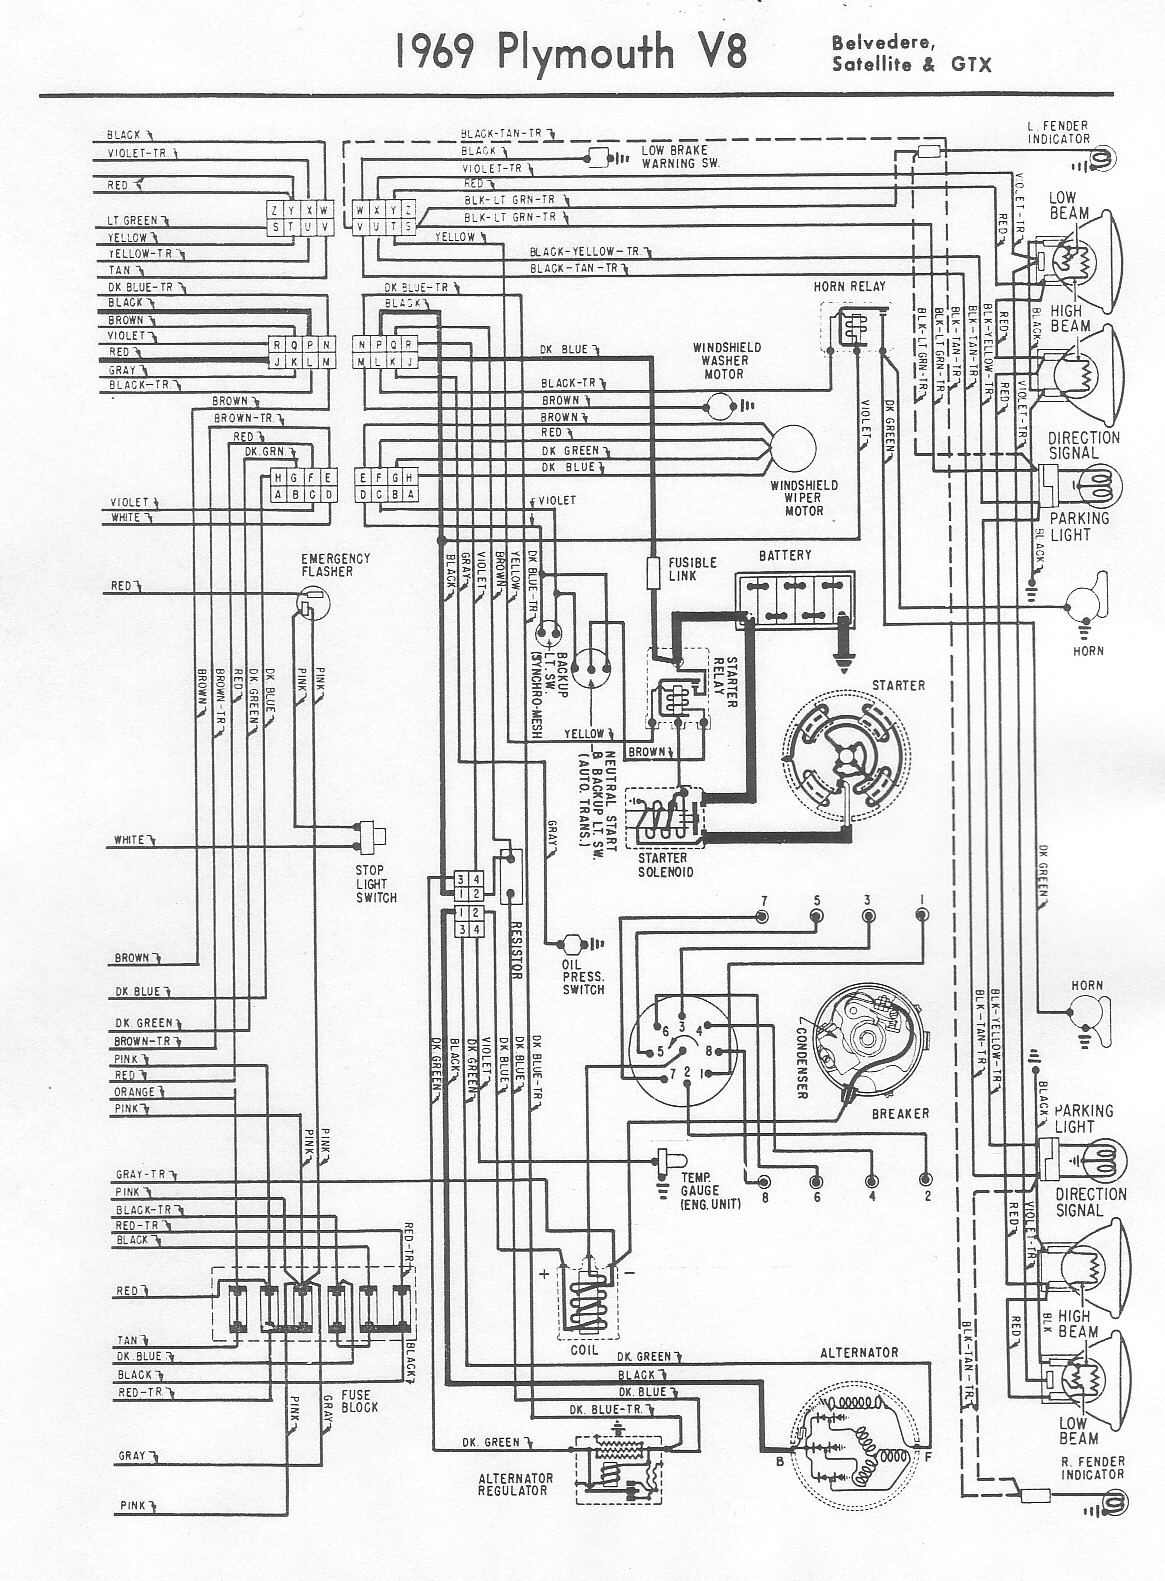 Plymouth Duster Fuse Box Simple Guide About Wiring Diagram Further Relay On Basic For Alternator 1968 Satellite 38